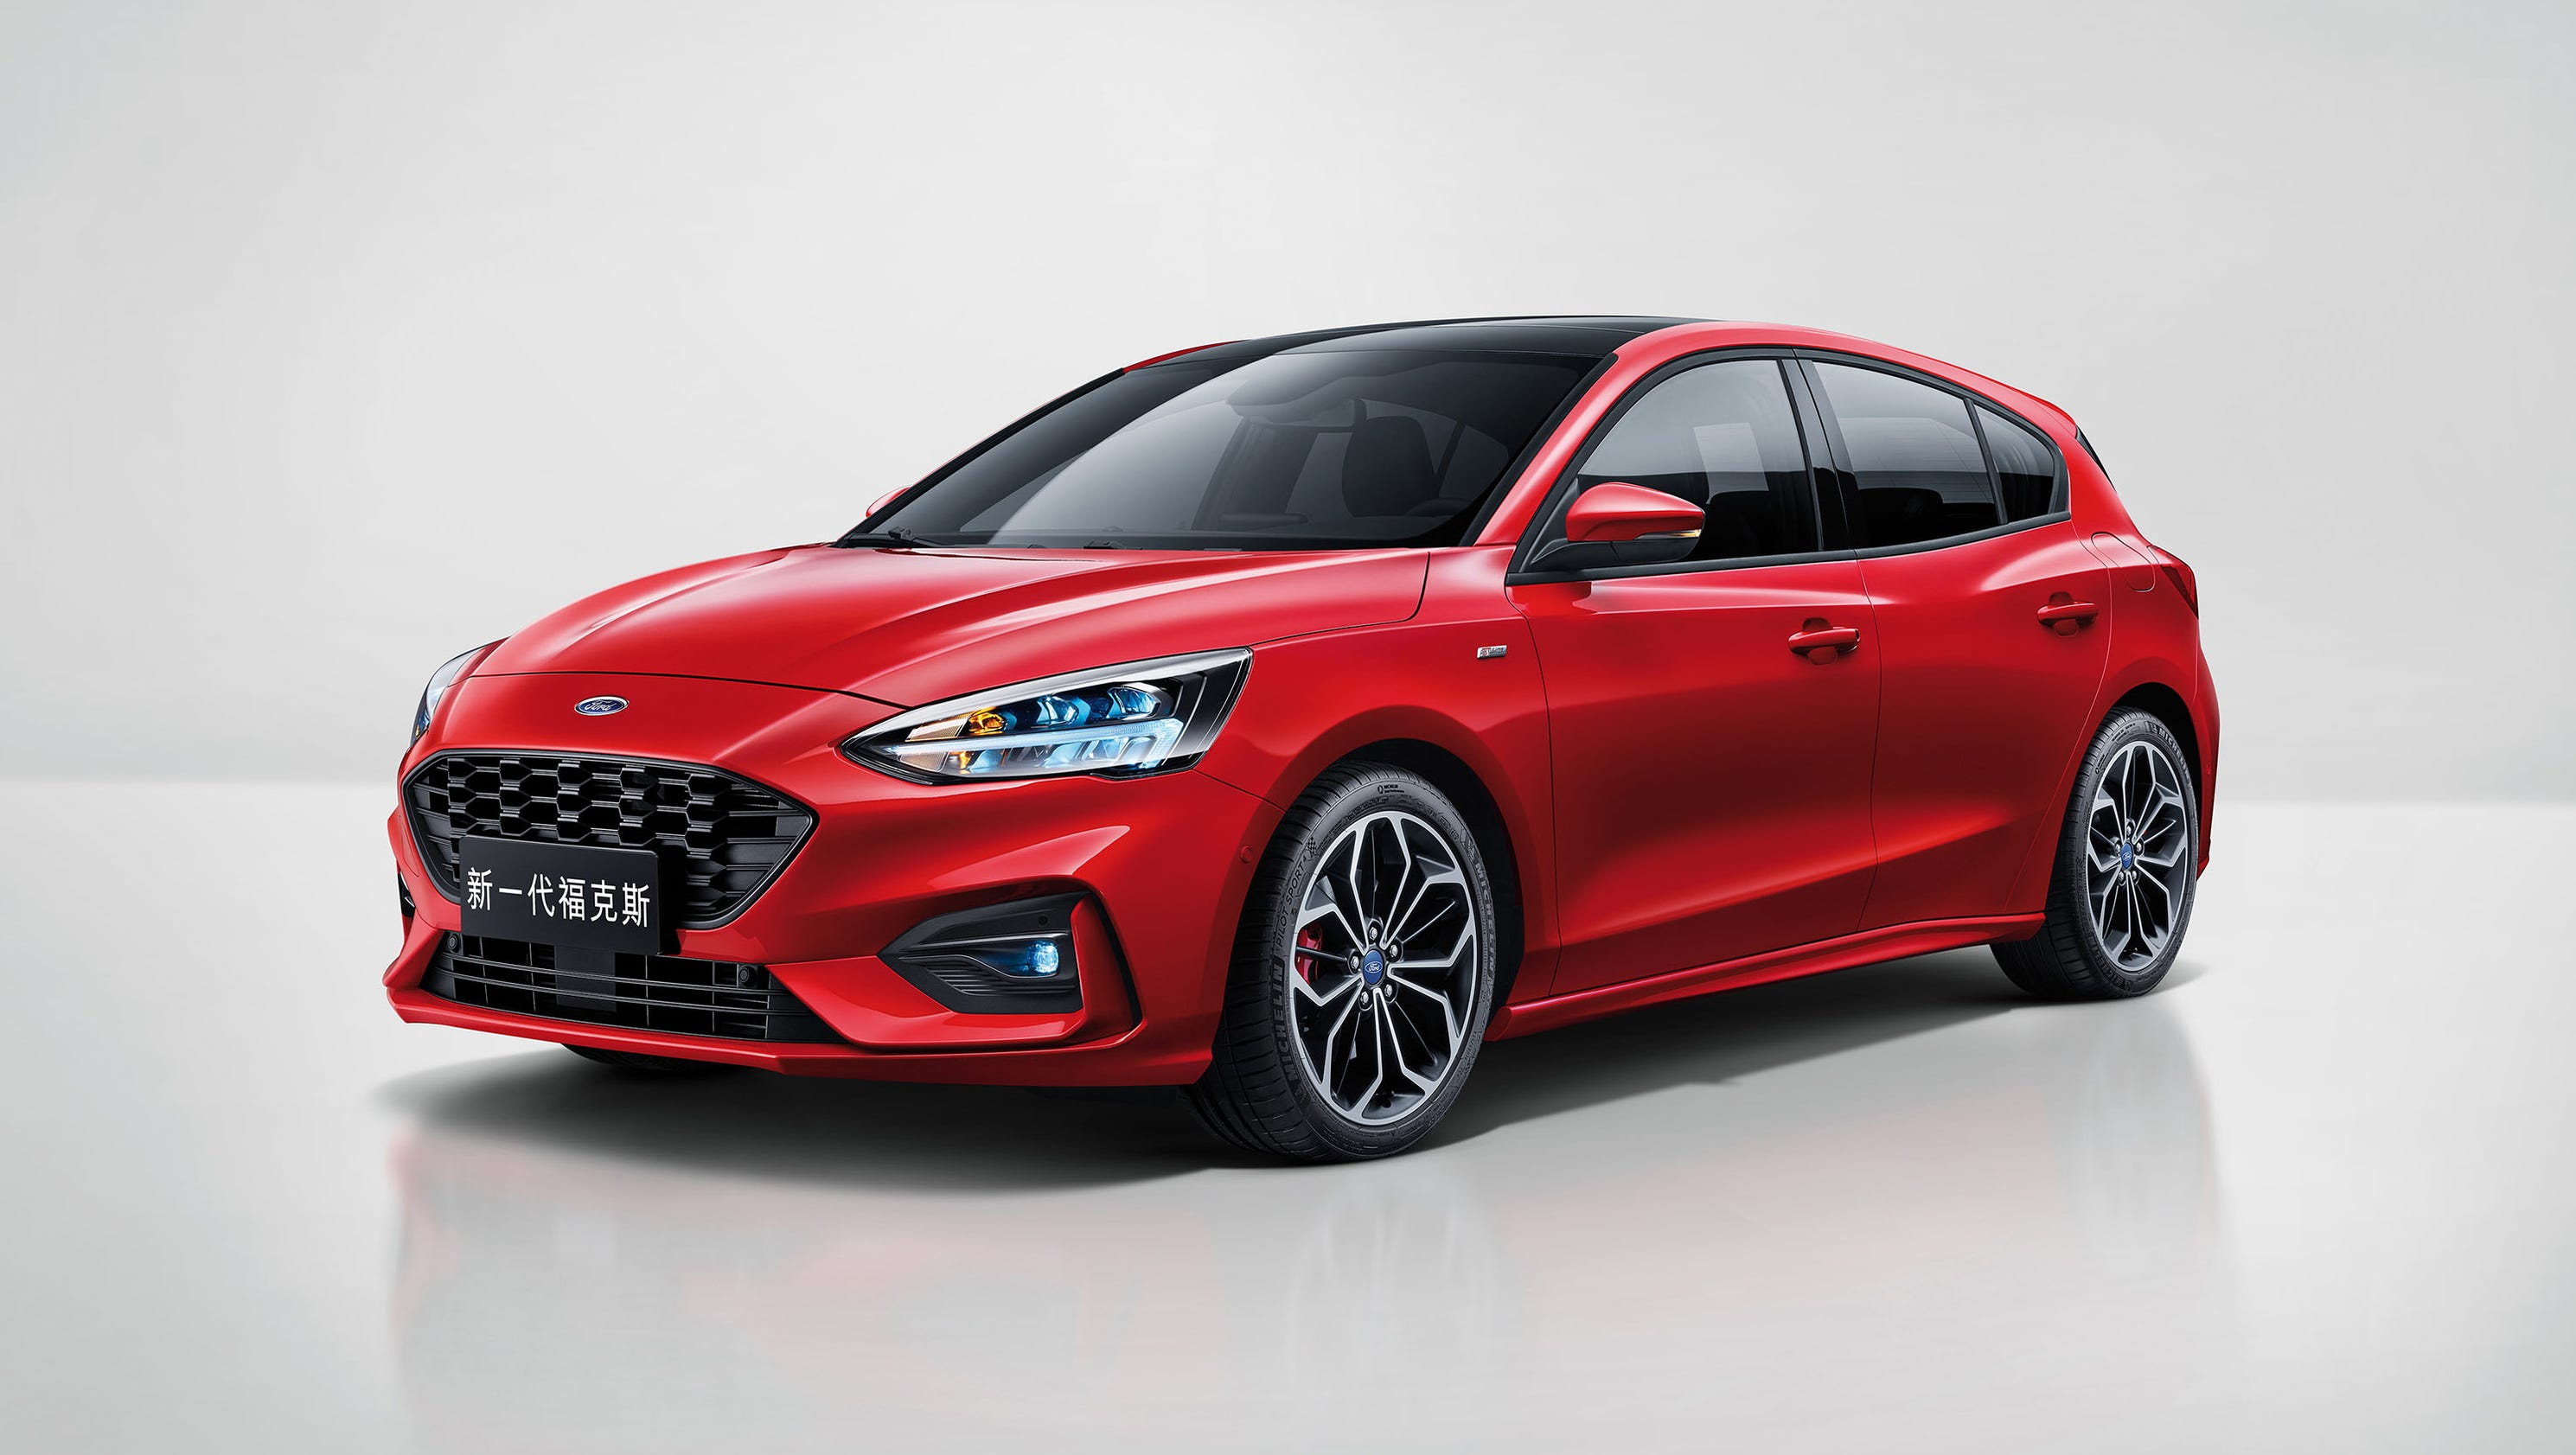 Ford Focus unveiling: Here's what's new